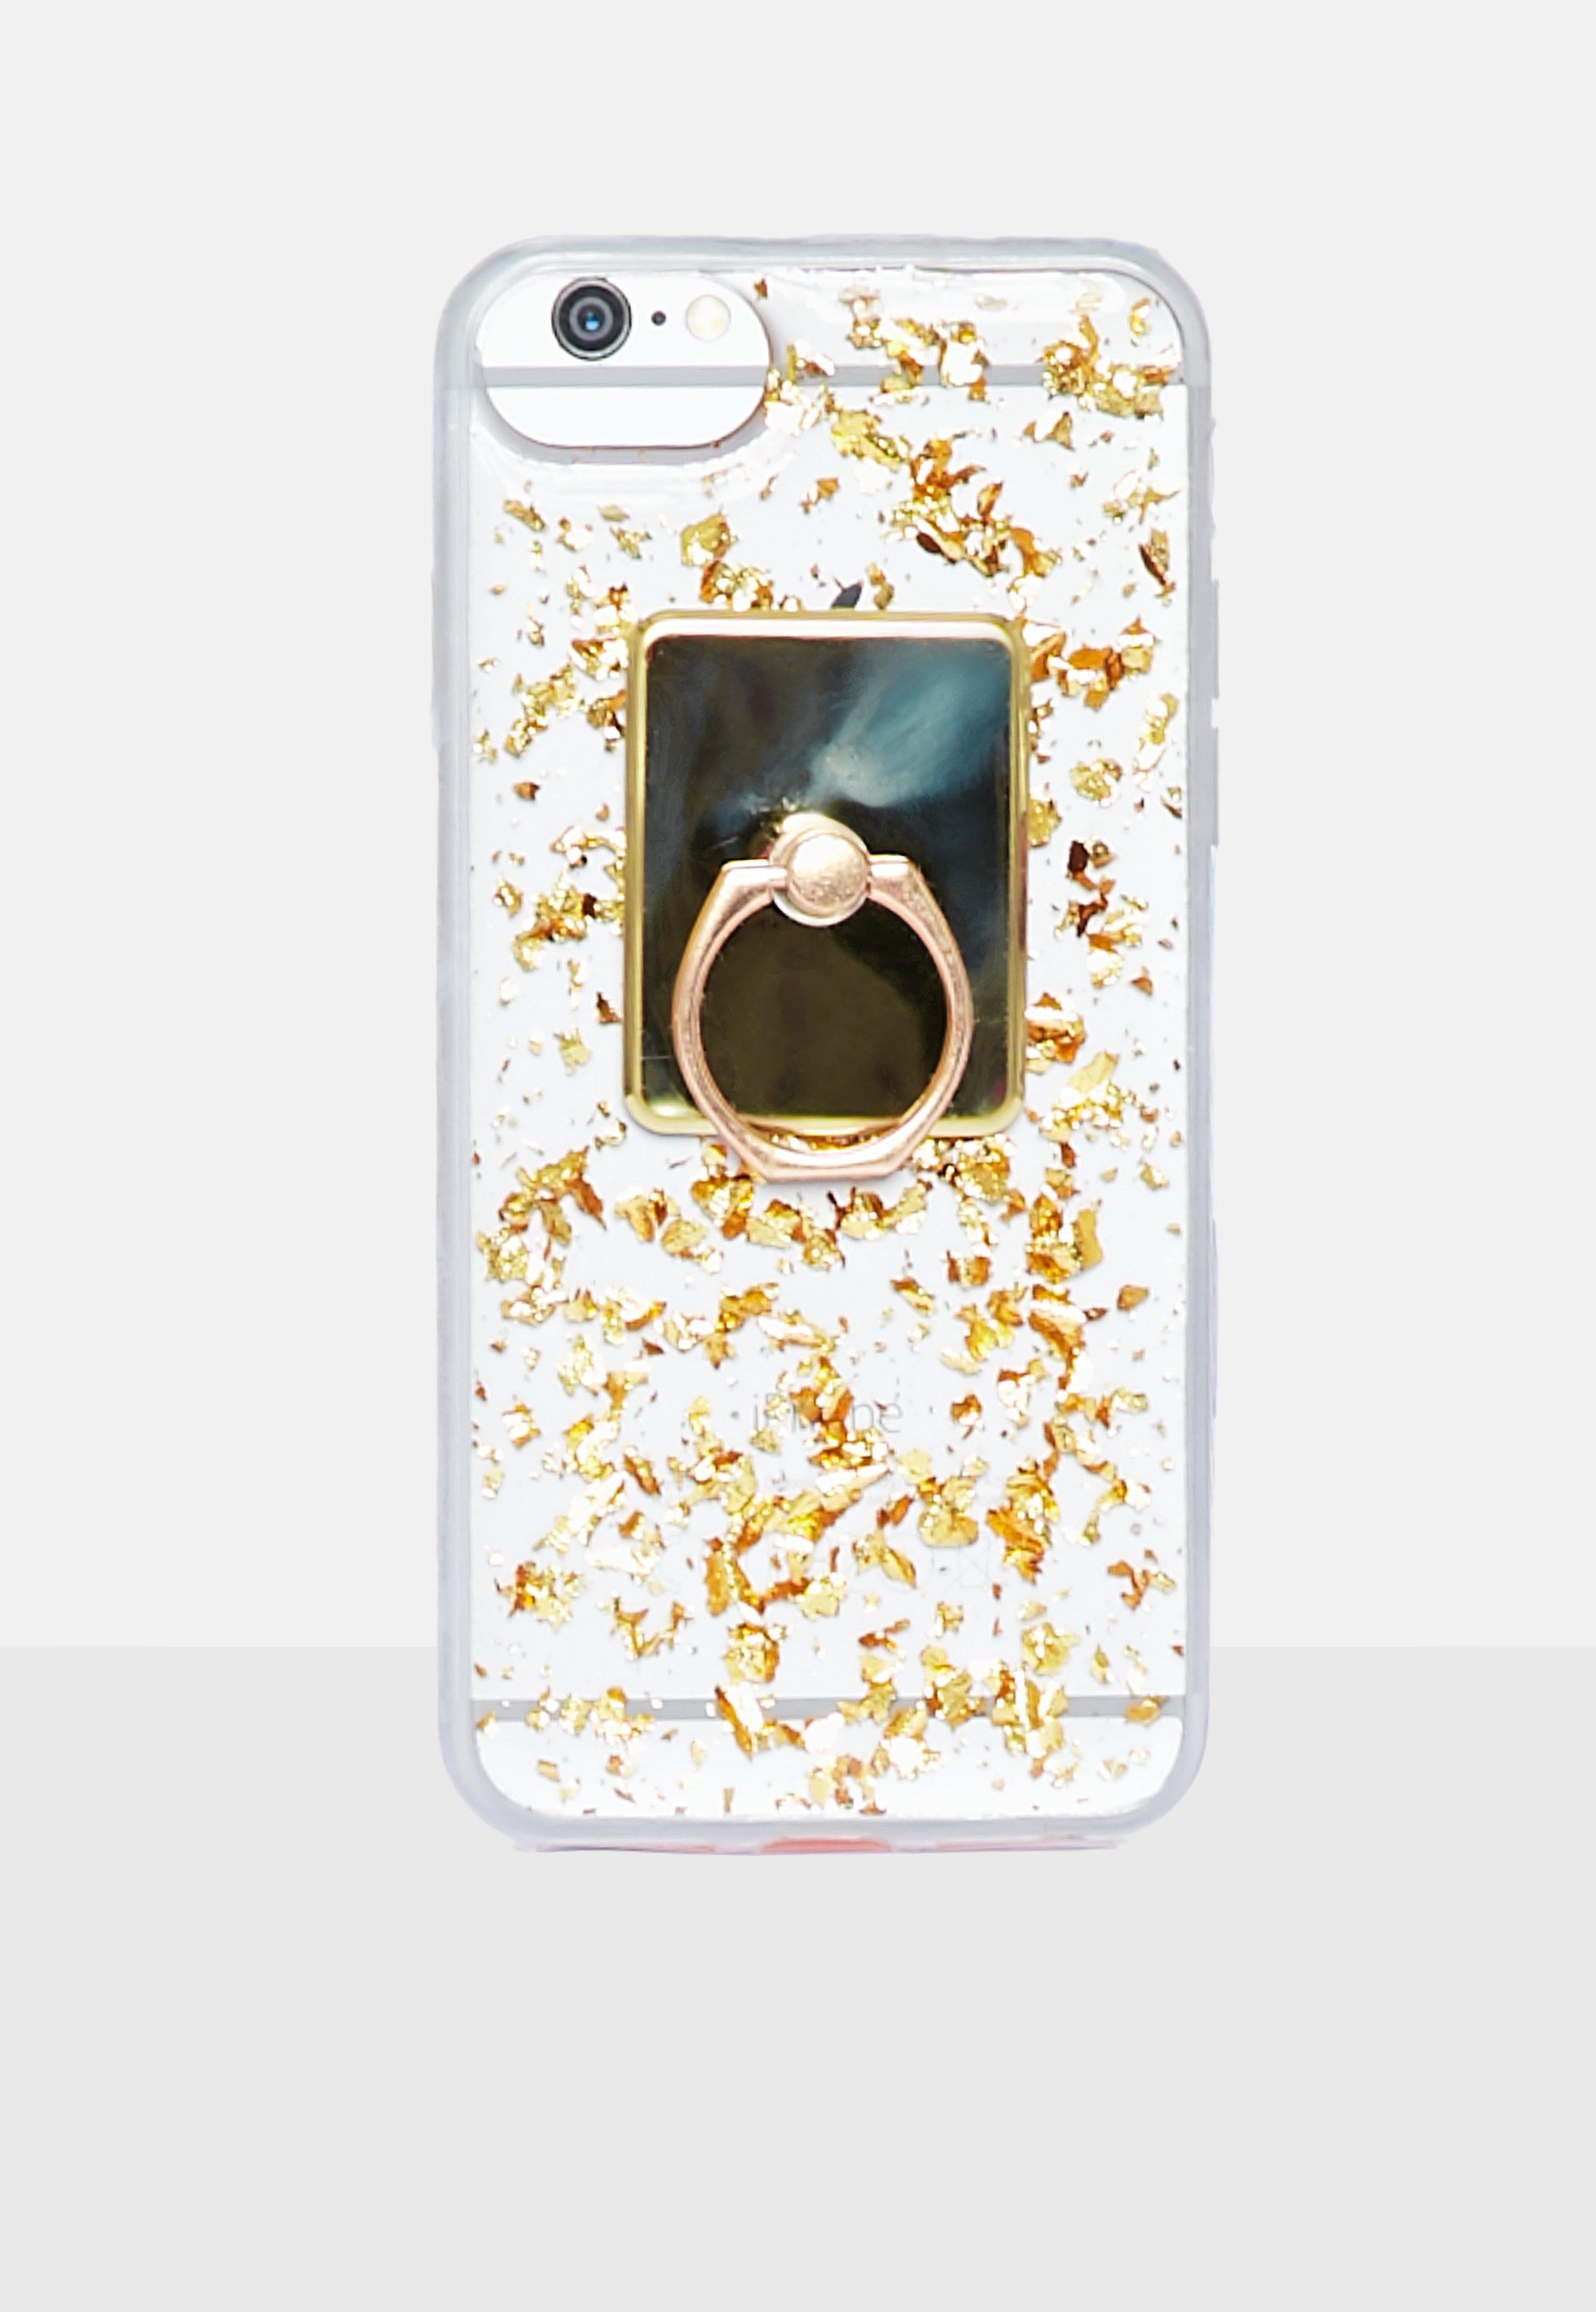 iPhone Cases & Screen Protectors - Missguided